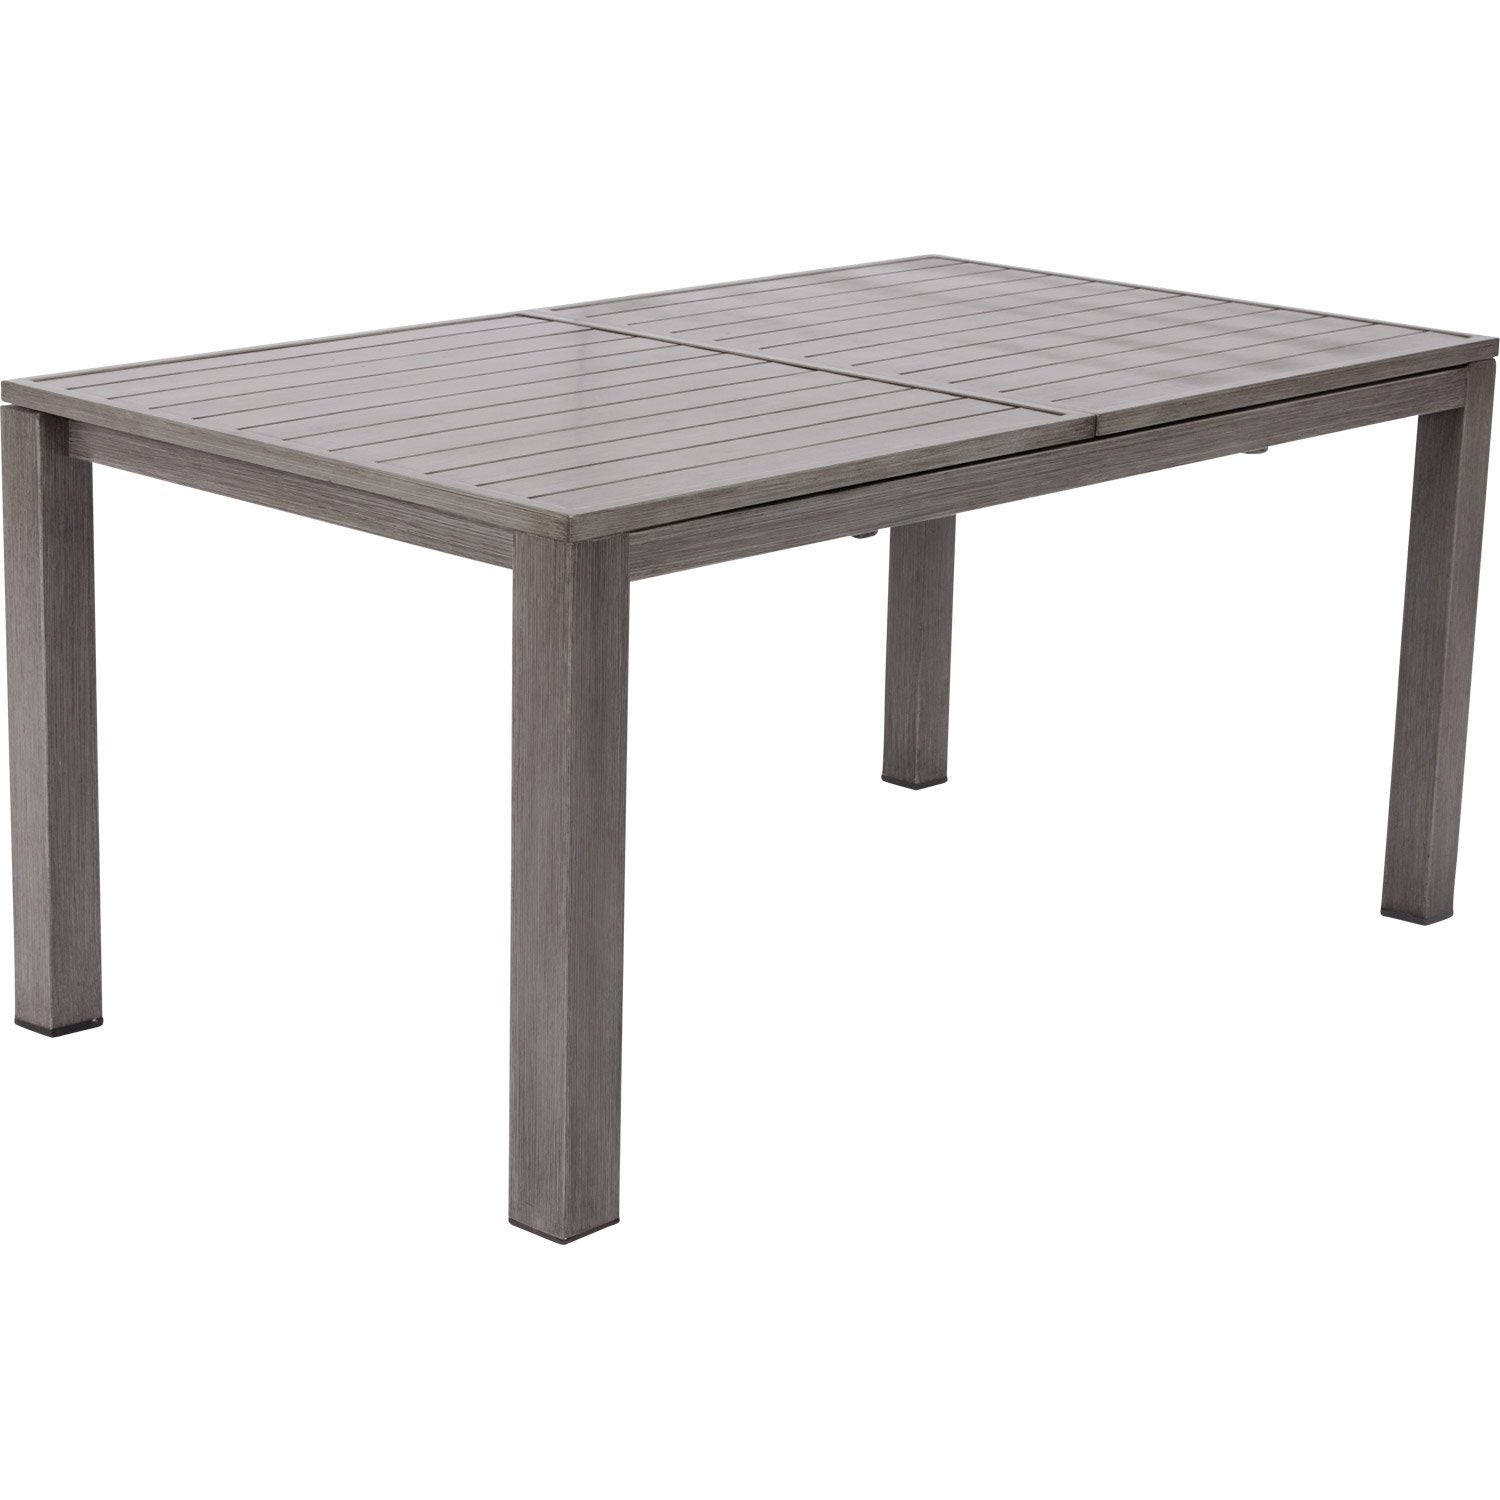 Table de jardin naterial antibes rectangulaire gris look Table rectangulaire bois avec allonges